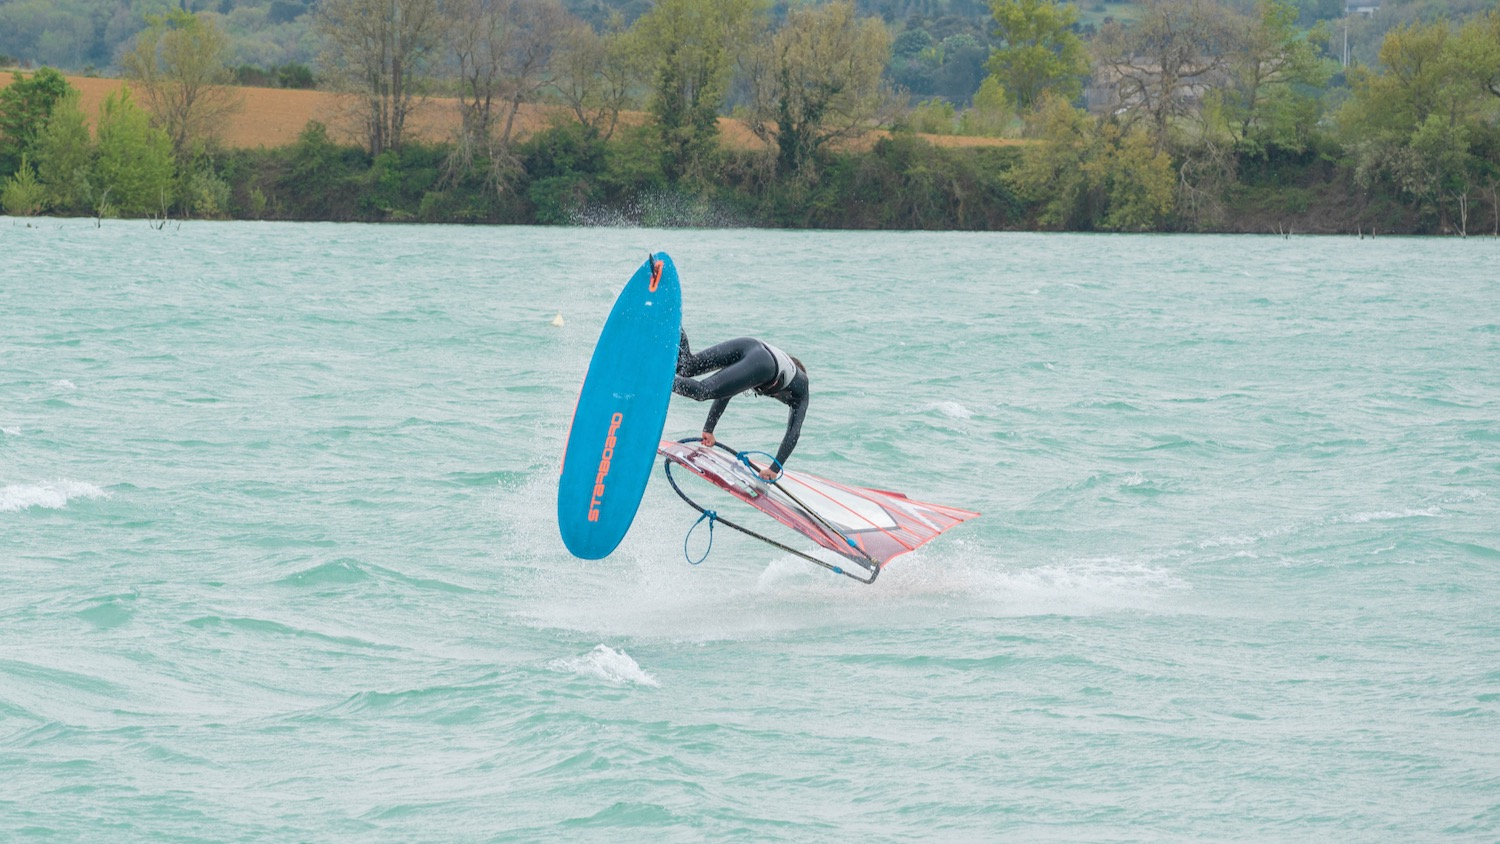 Raphael Bauer joins the French Starboard Severne team